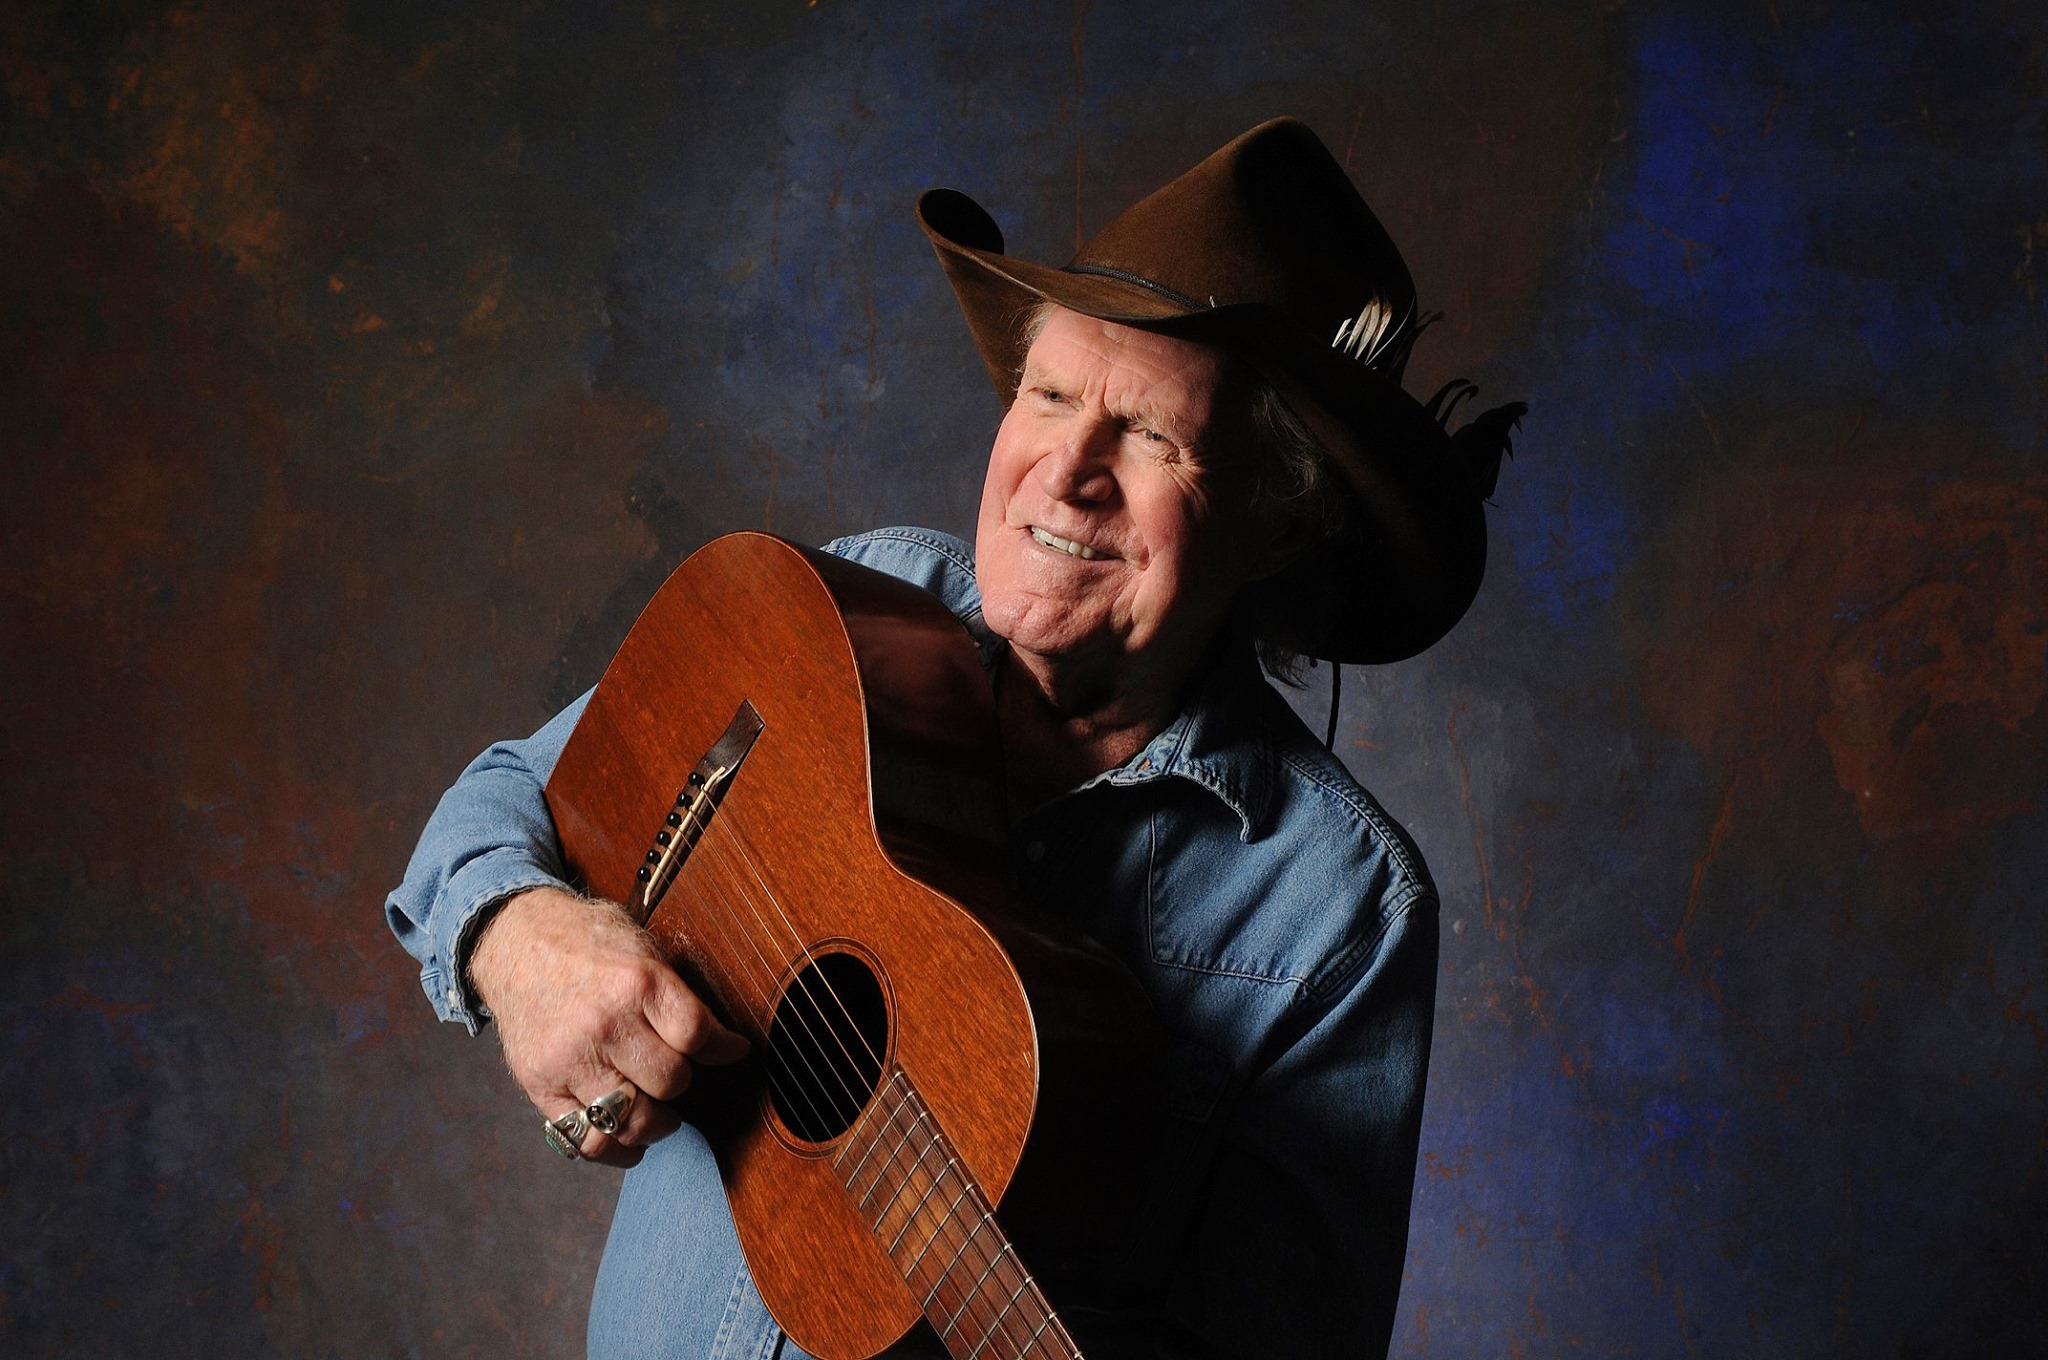 Billy_joe_shaver_pub_shot_small